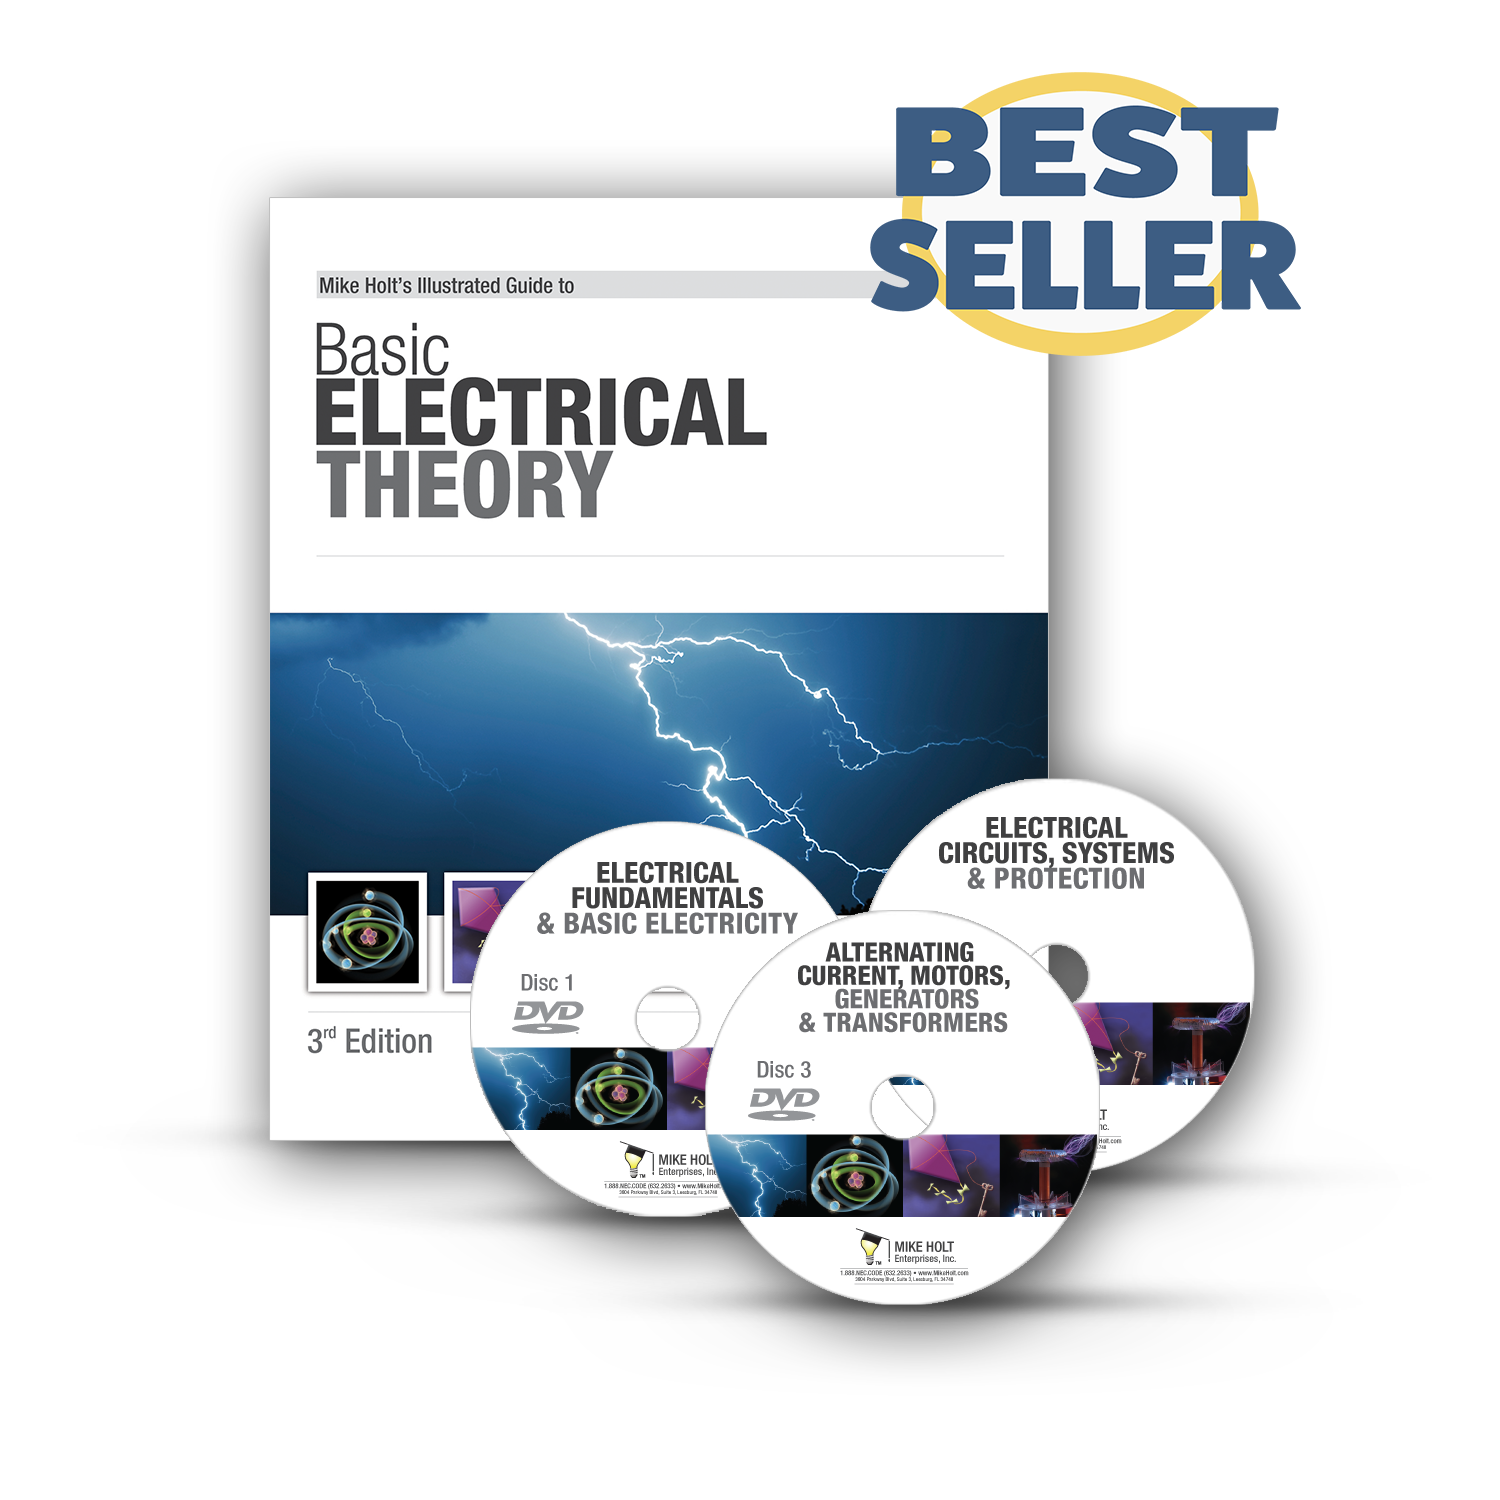 Base Electricit Electrical Engineering Tutorial Basic Electricity Snap Circuits Sound Kit Image One Xumpcom Theory Dvd Library Etlibd